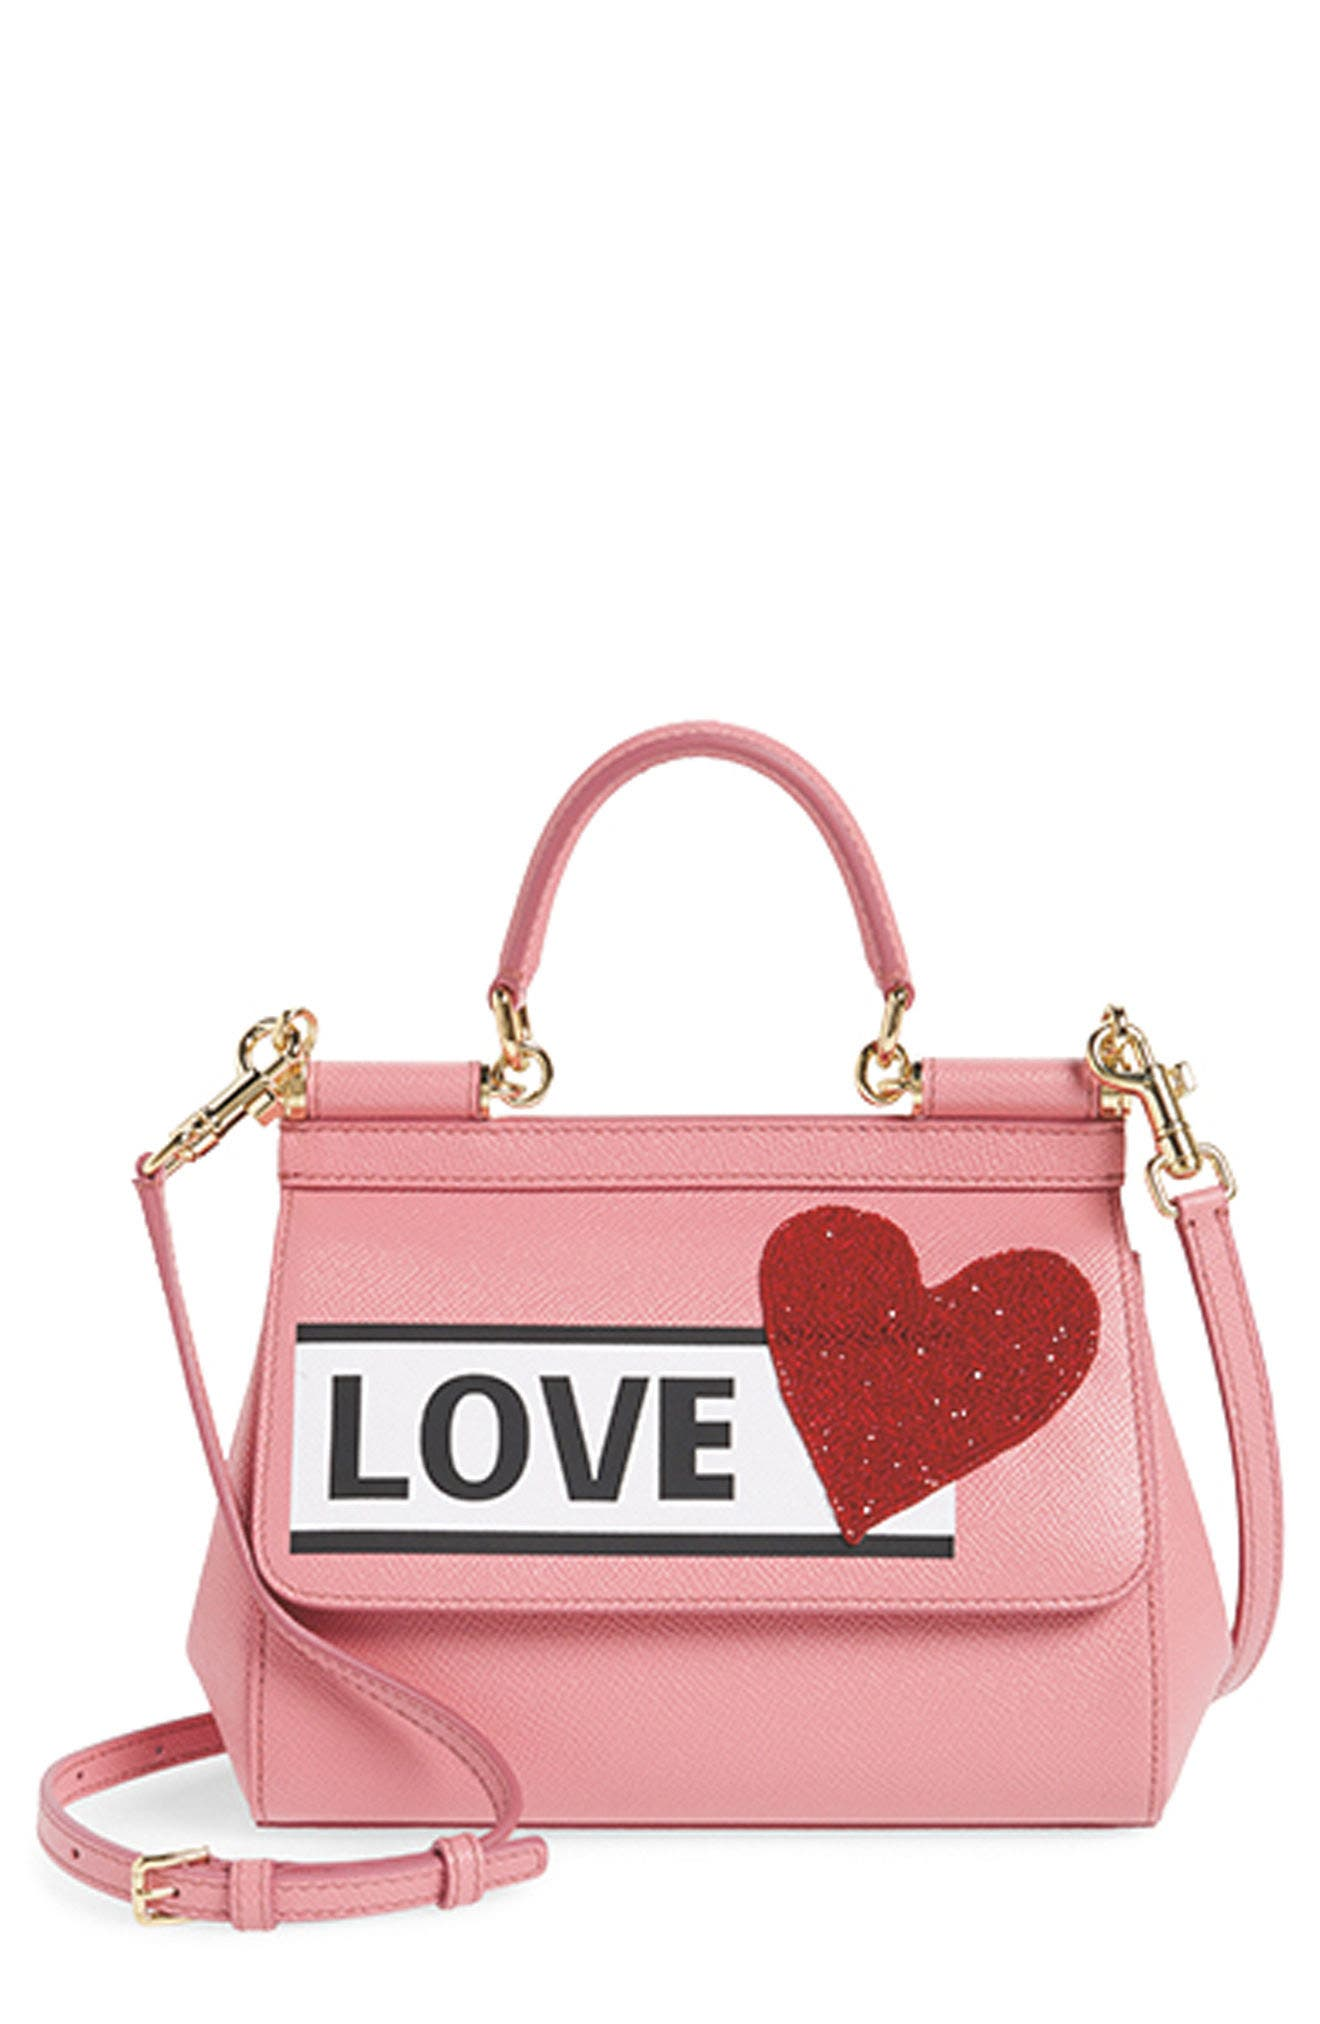 Small Miss Sicily - Love Leather Satchel,                             Alternate thumbnail 8, color,                             670